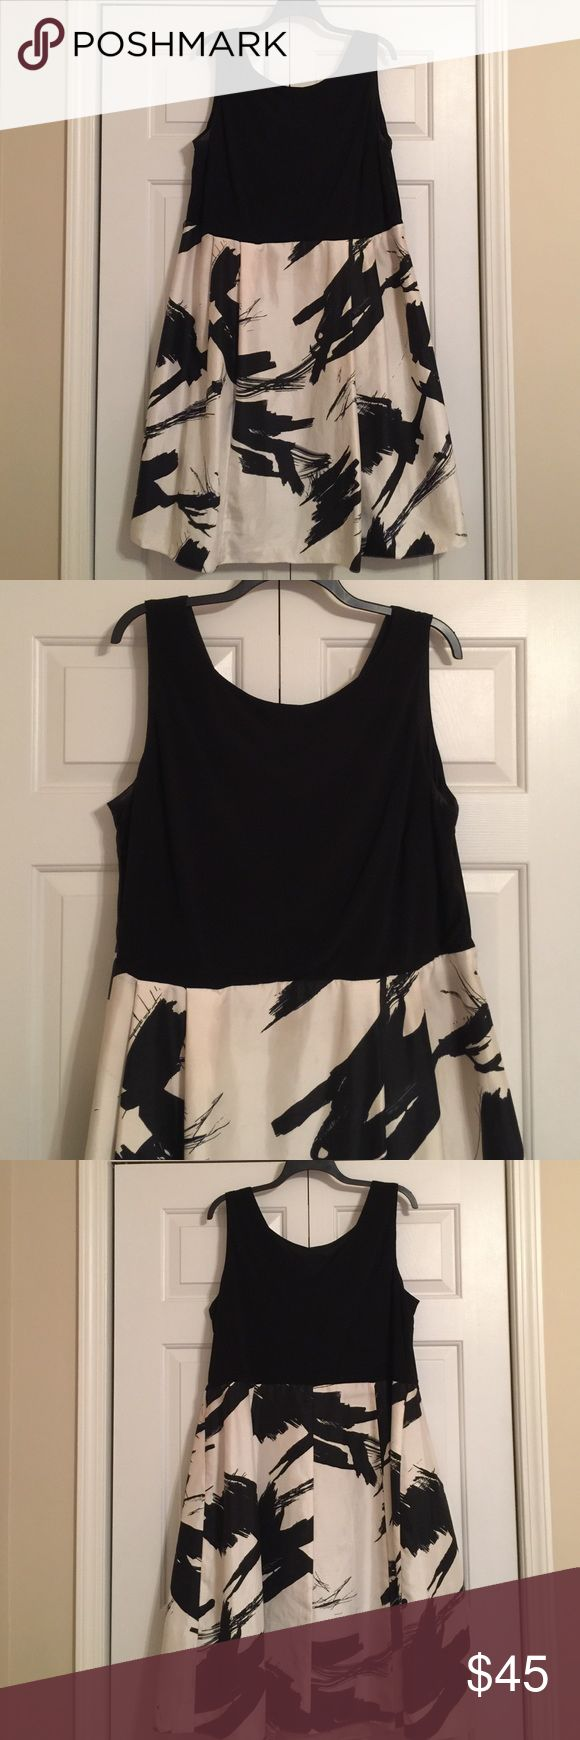 Black and cream cocktail dress Stunning cocktail dress. Good condition. Jessica Howard Dresses